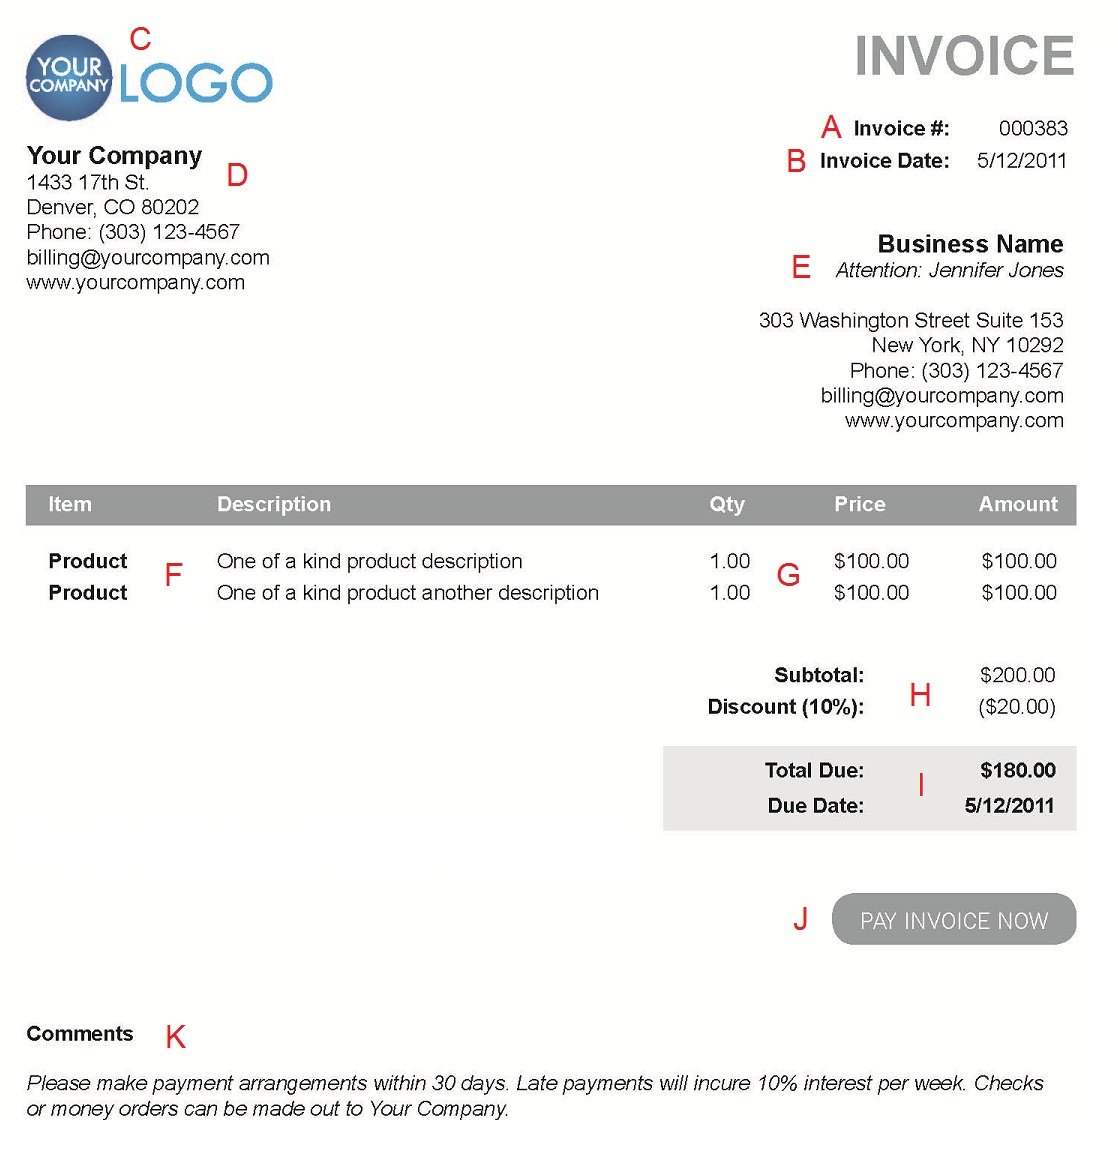 Centralasianshepherdus  Winsome The  Different Sections Of An Electronic Payment Invoice With Engaging A  With Awesome Daycare Invoice Also Proforma Invoice Vs Commercial Invoice In Addition Professional Invoice And Free Online Invoices As Well As Create A Invoice Additionally Invoice Icon From Paysimplecom With Centralasianshepherdus  Engaging The  Different Sections Of An Electronic Payment Invoice With Awesome A  And Winsome Daycare Invoice Also Proforma Invoice Vs Commercial Invoice In Addition Professional Invoice From Paysimplecom